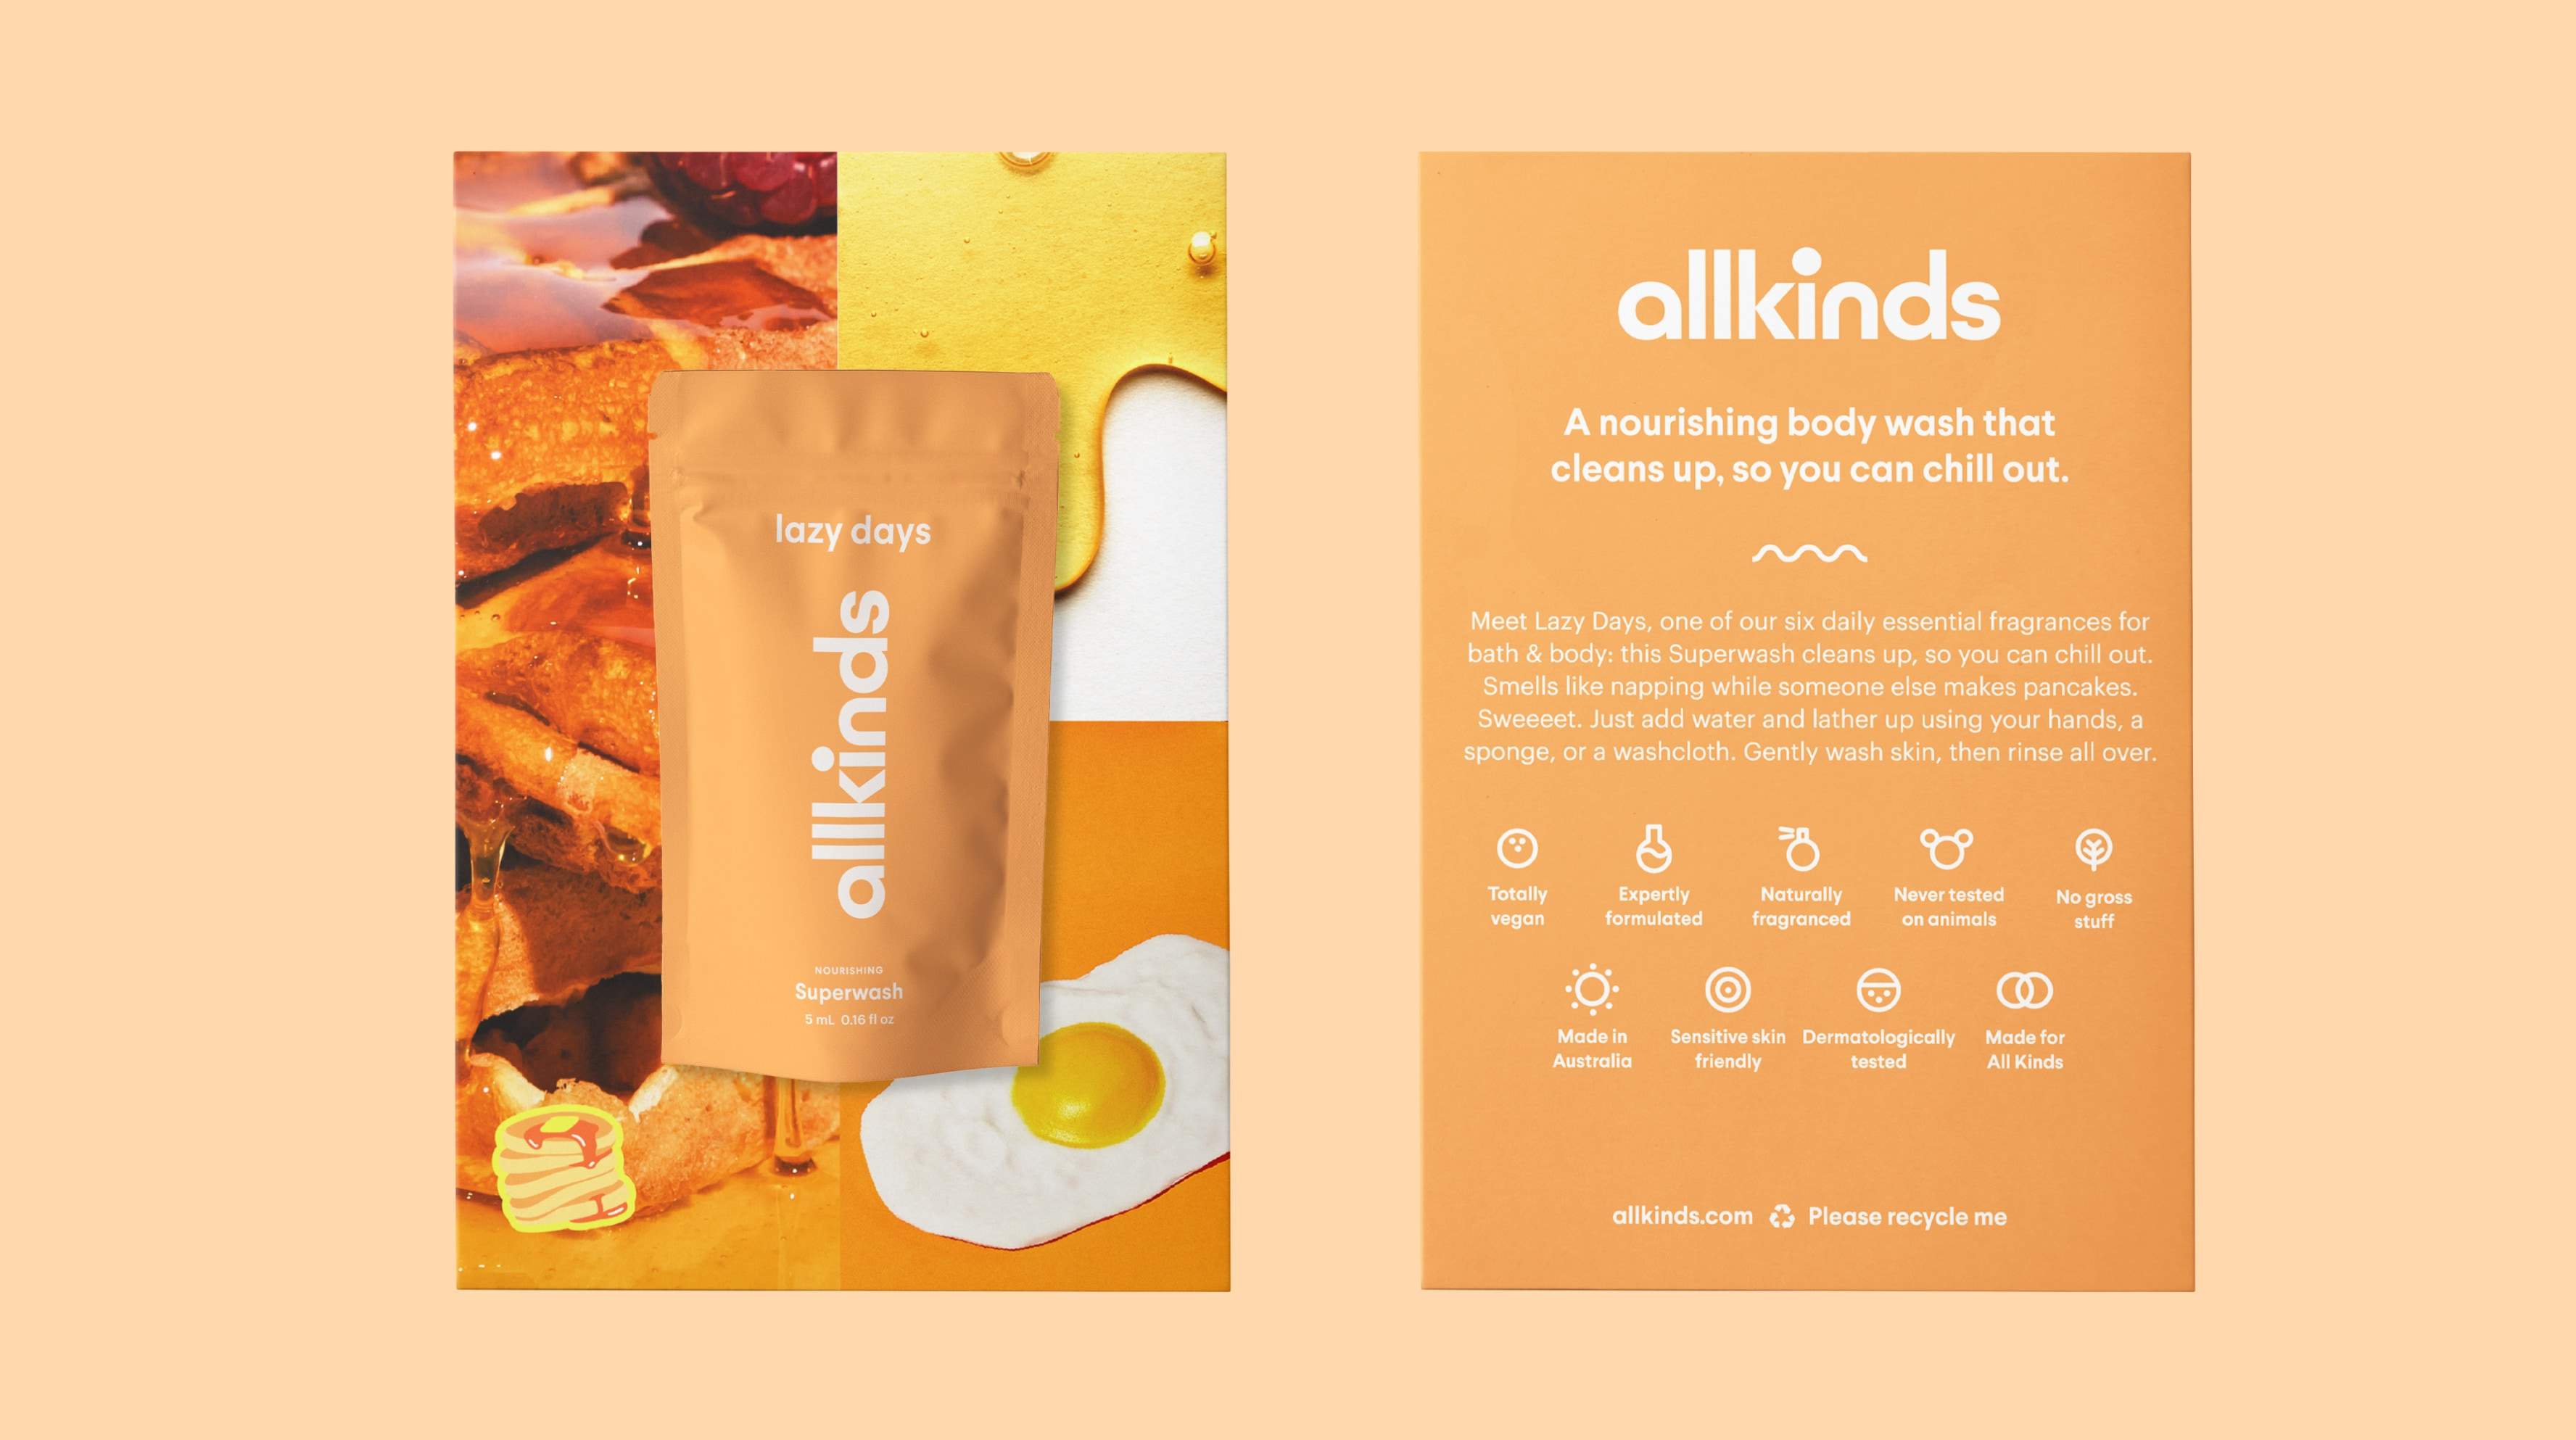 Allkinds Lazy Days Superwash sample and sampling card packaging for retail distribution